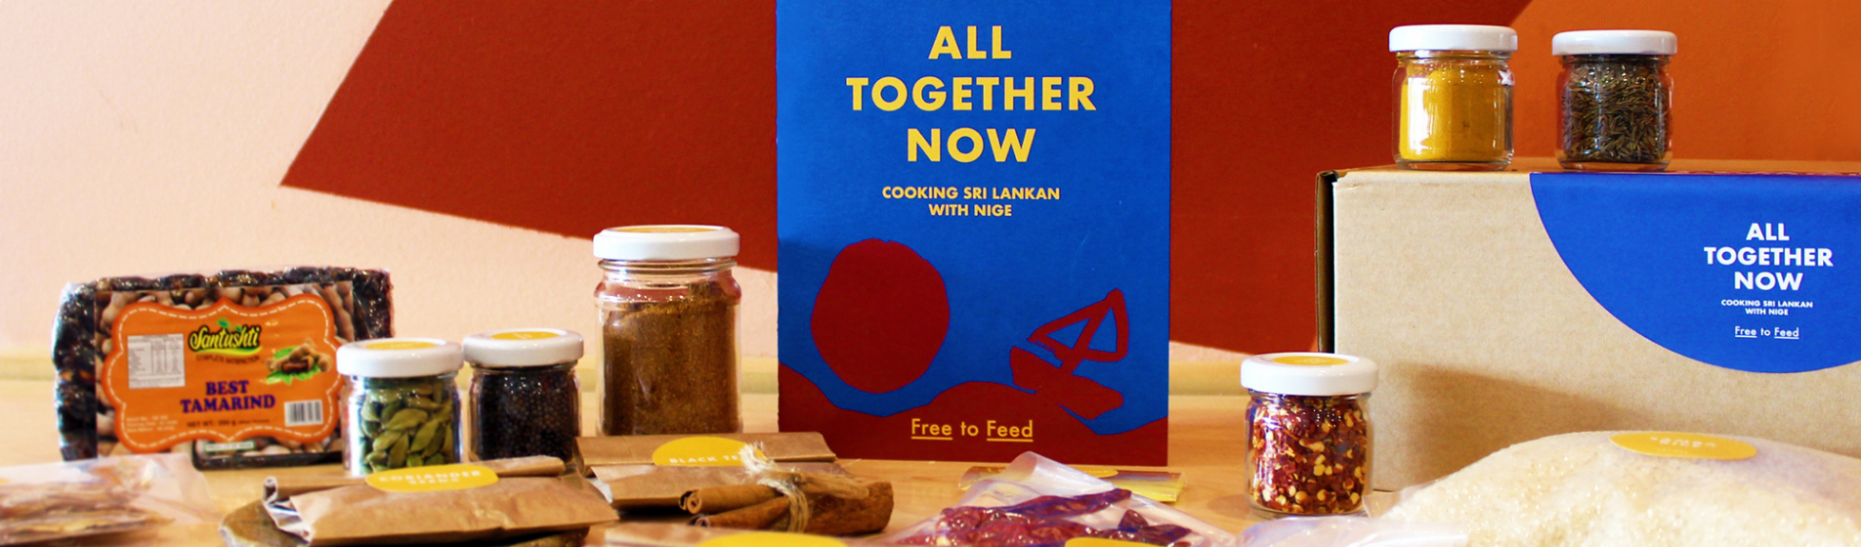 Free to Feed Instruction Pamphlet and Ingredients